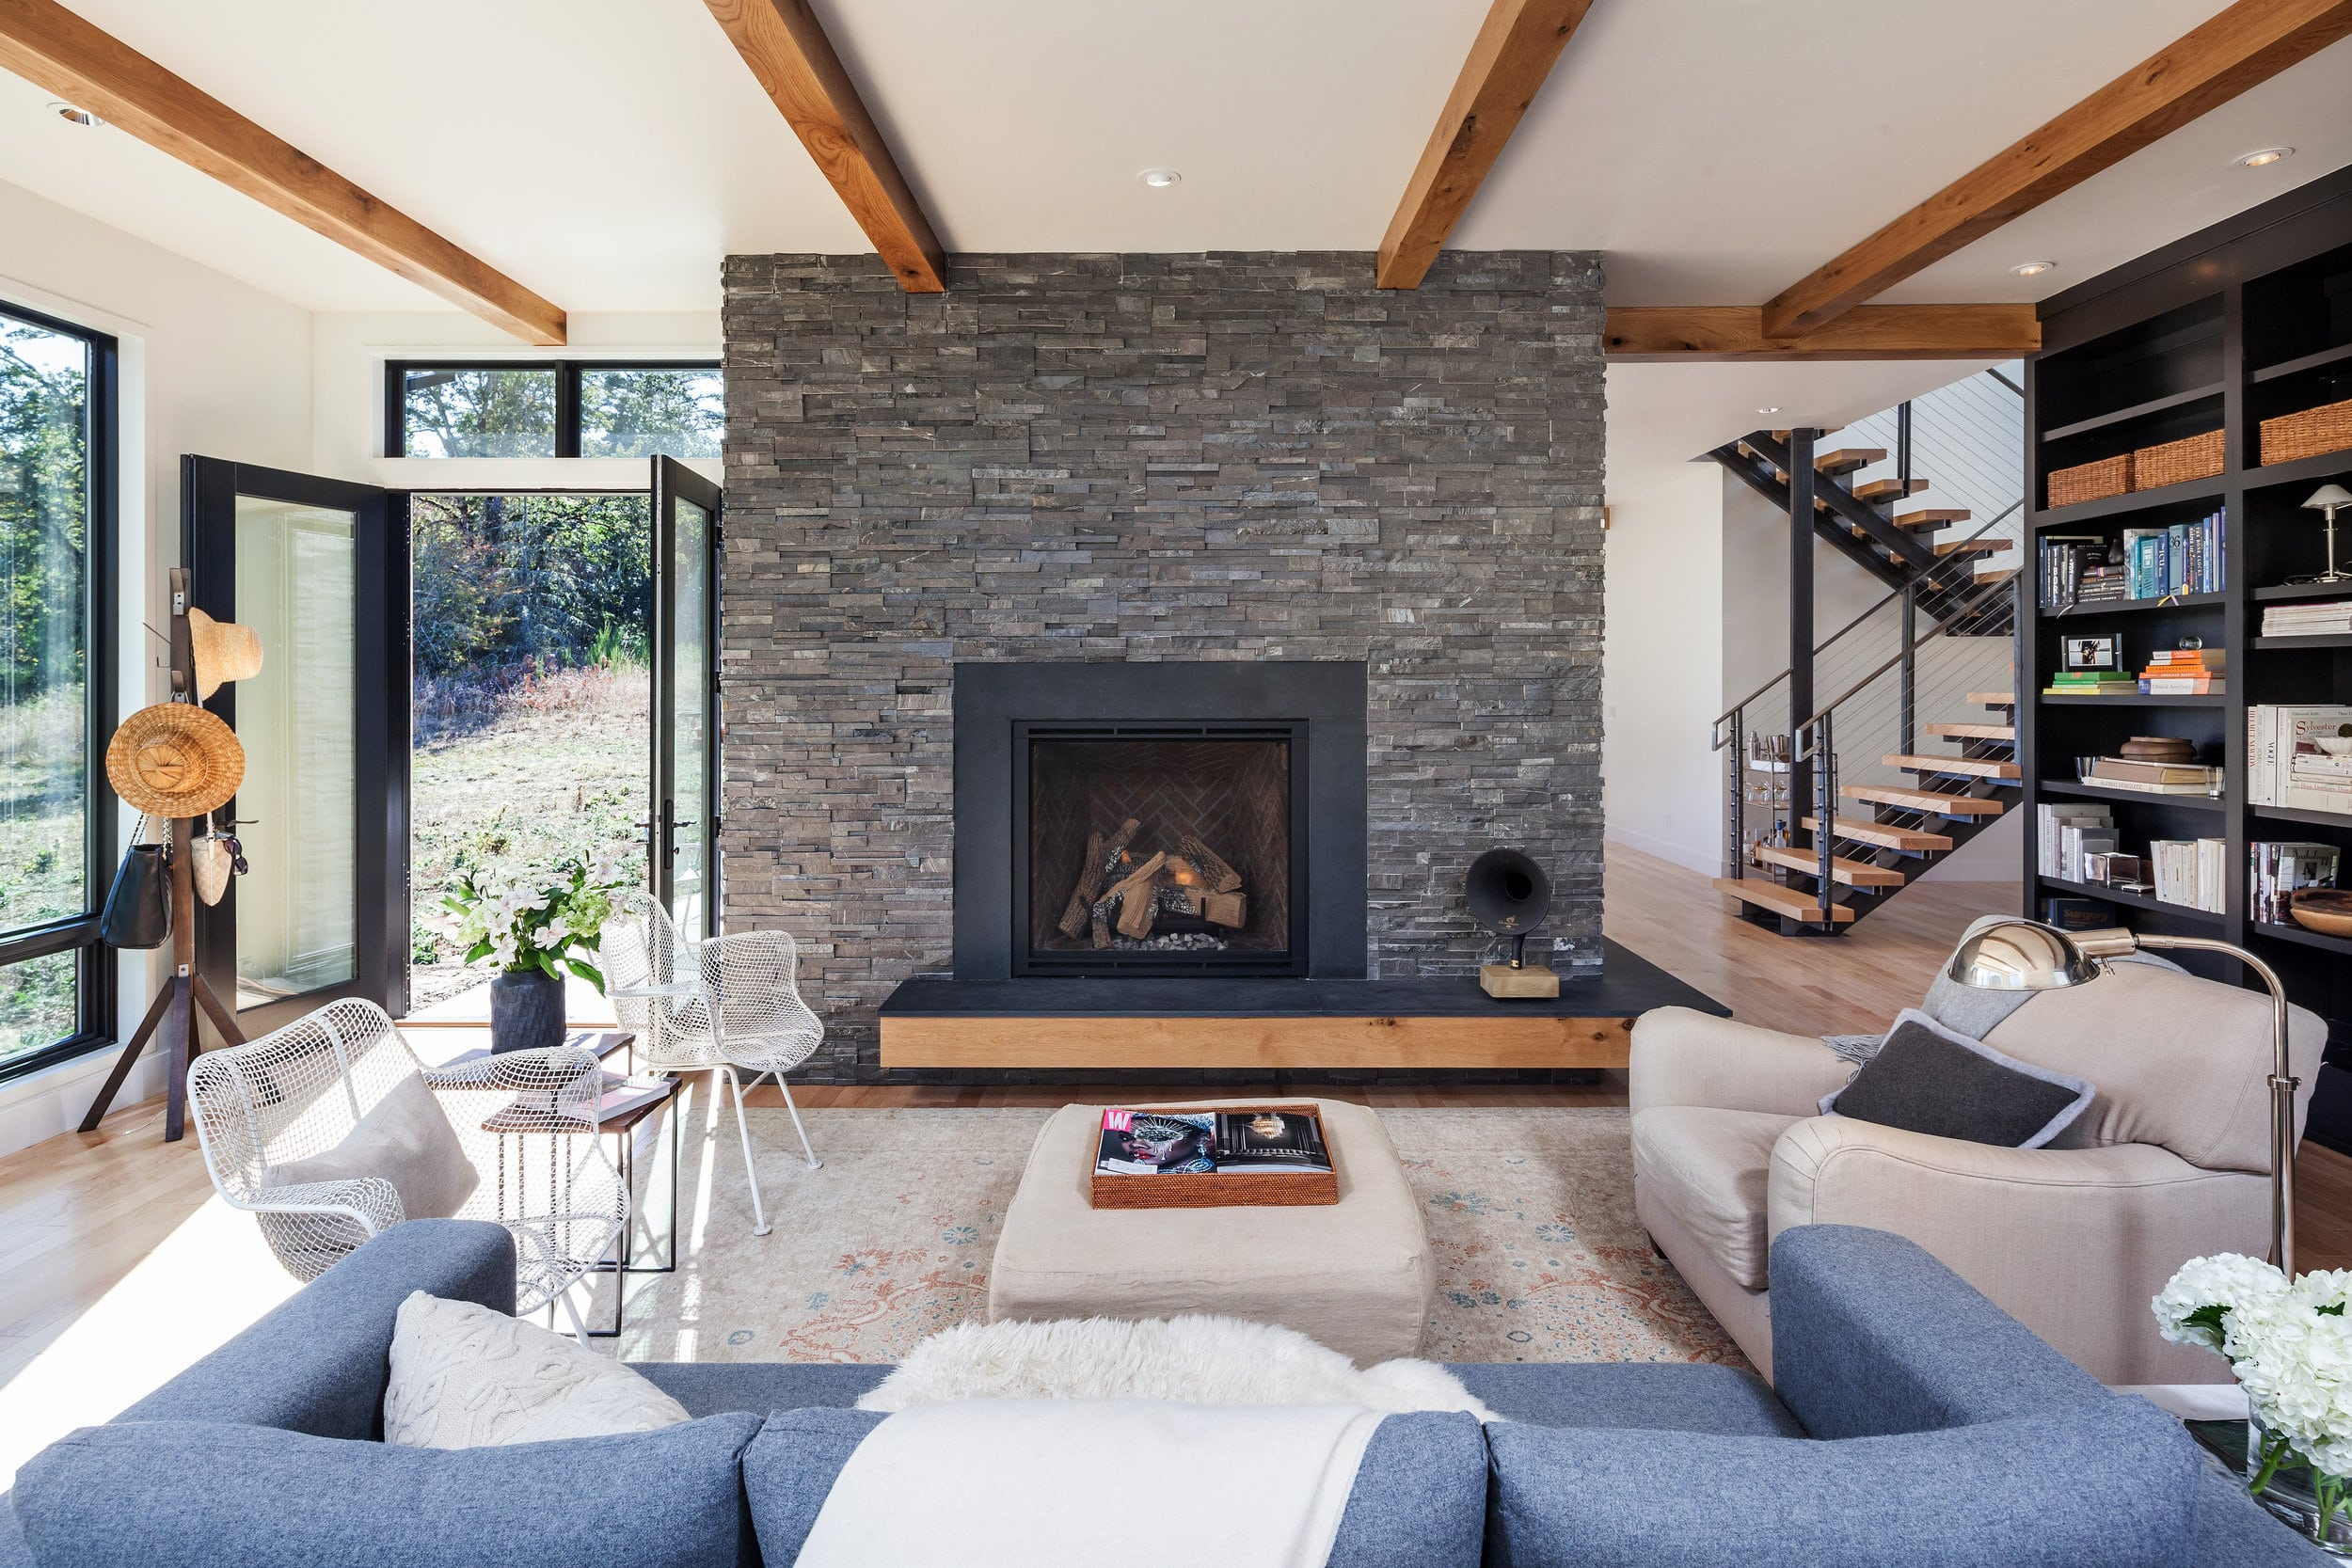 Norstone Charcoal Rock Panels used as the natural stone wall veneer on a fireplace project for Improved Indoor Air Quality